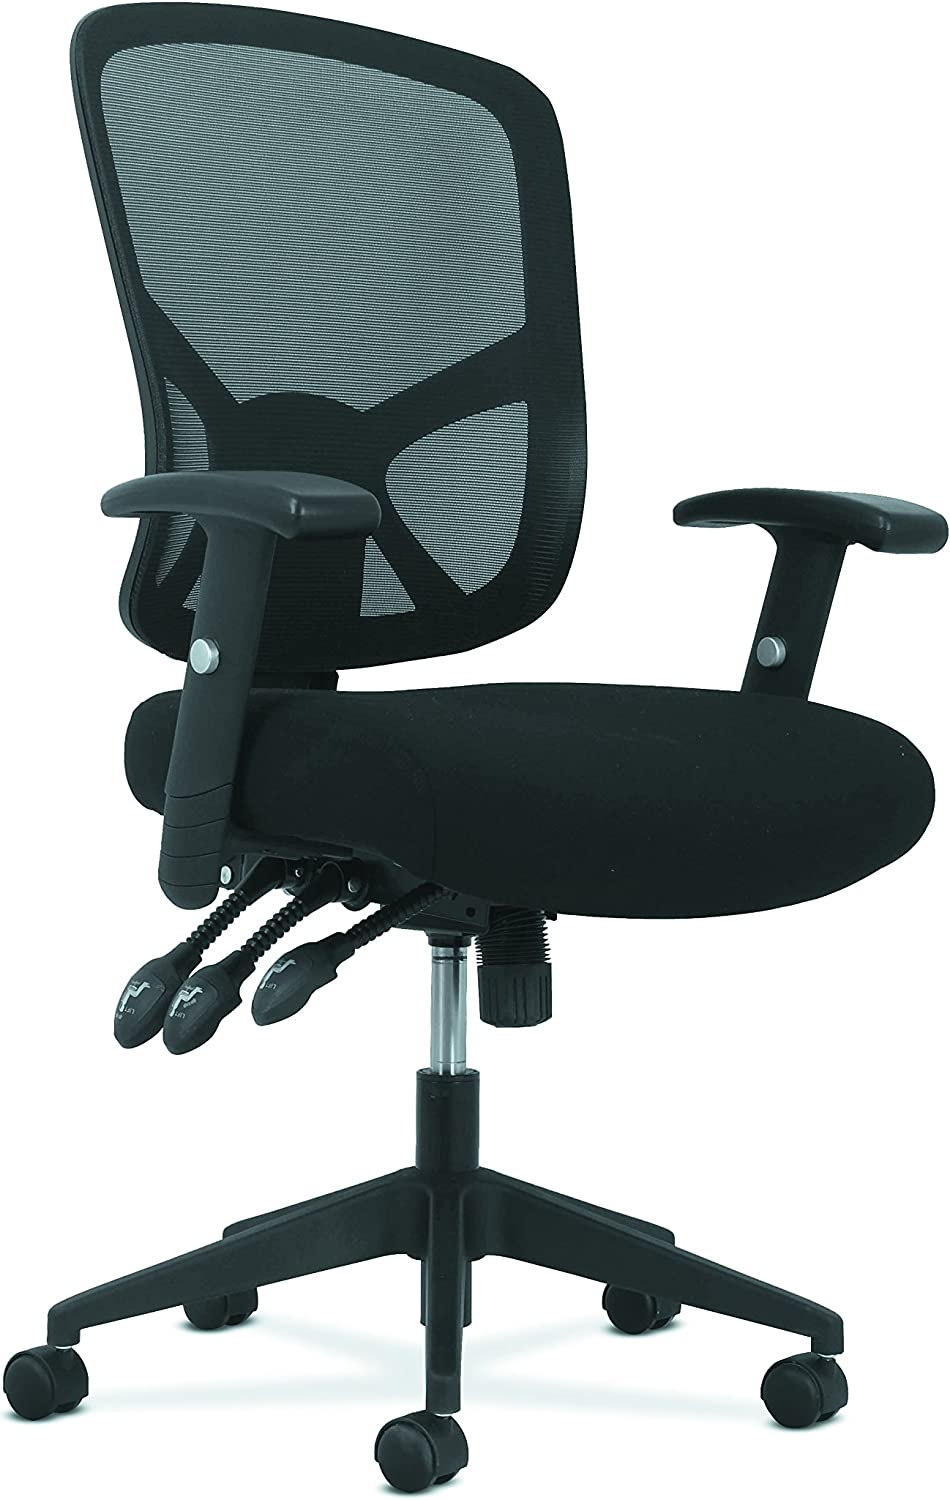 Sadie Customizable Ergonomic High-Back Mesh Task Chair with Arms and Lumbar Support